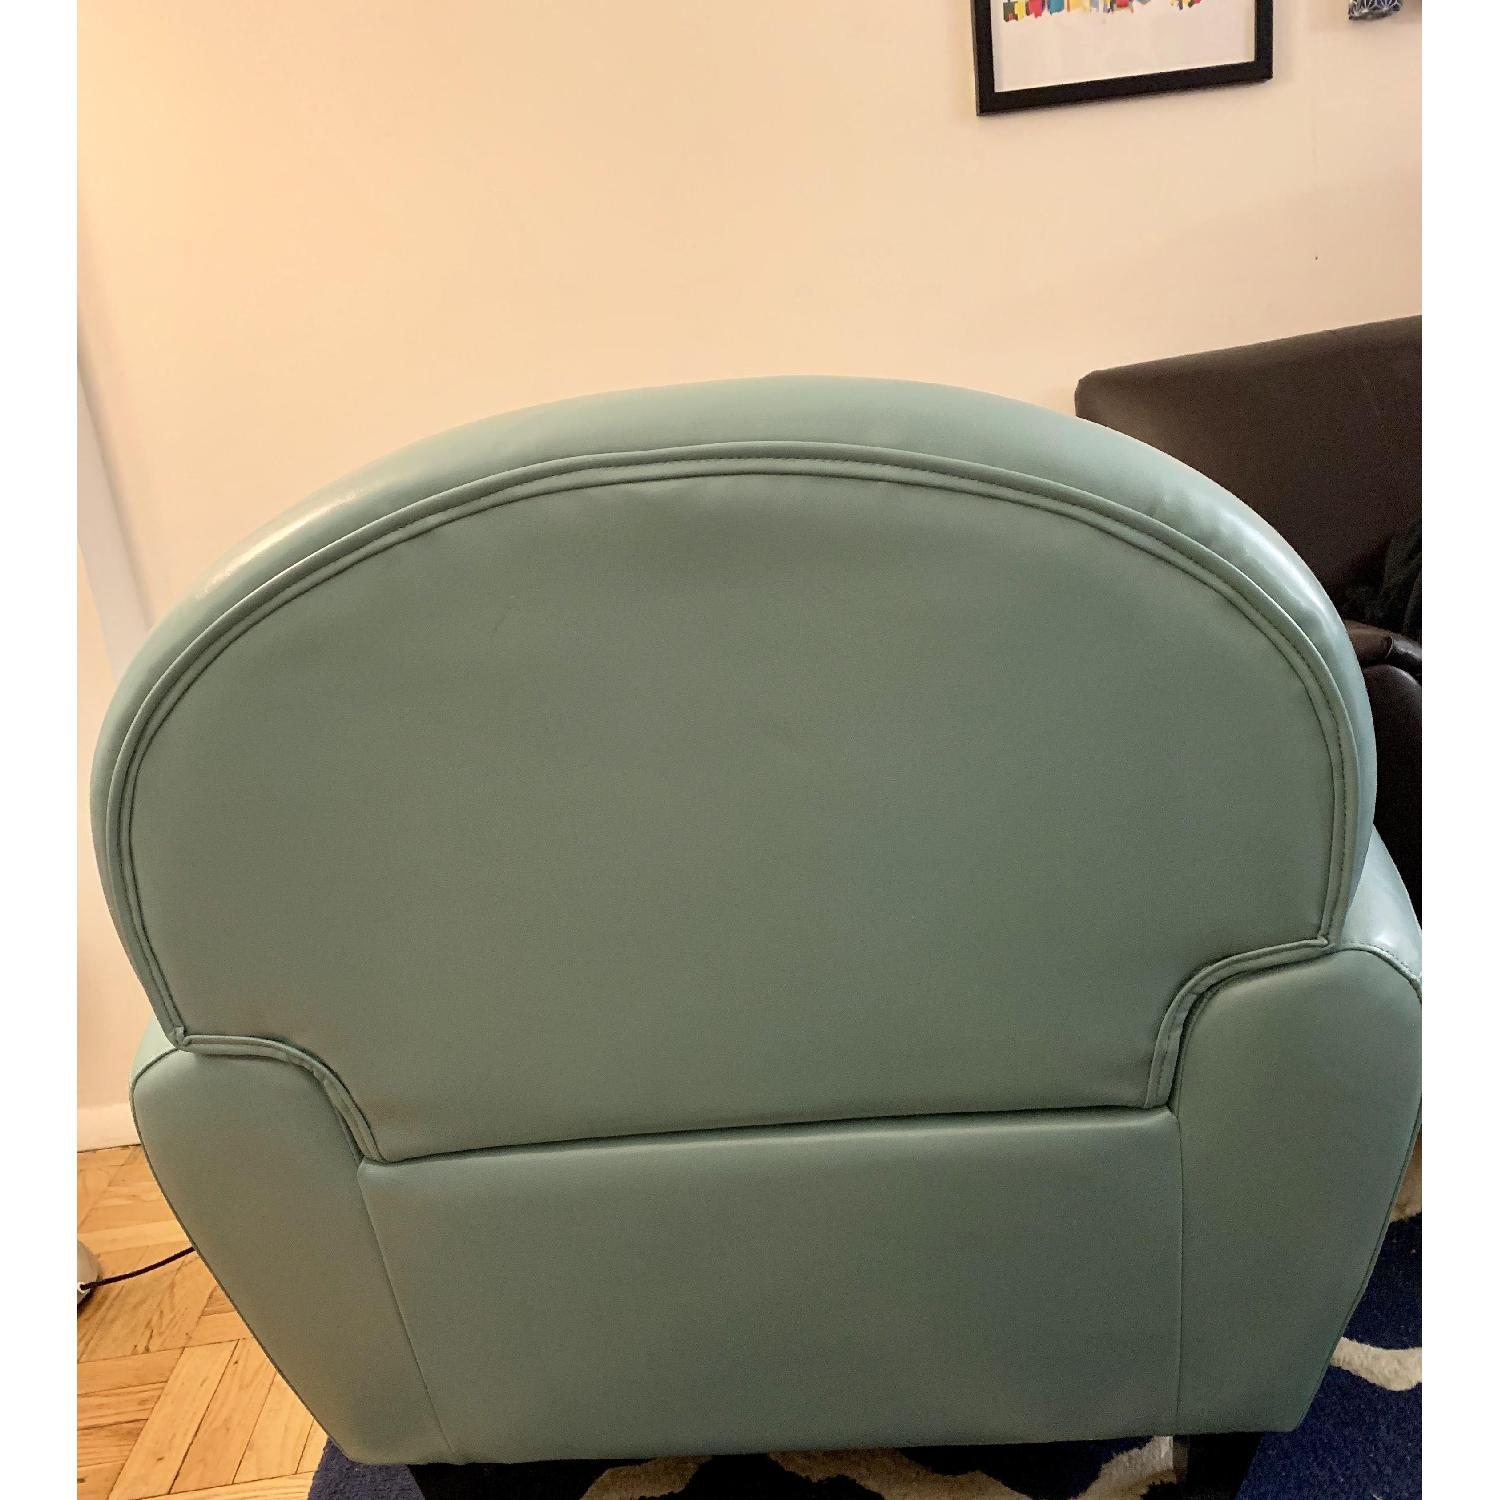 Home Loft Concept Lorenz Leather Cigar Chair in Teal Blue - image-4